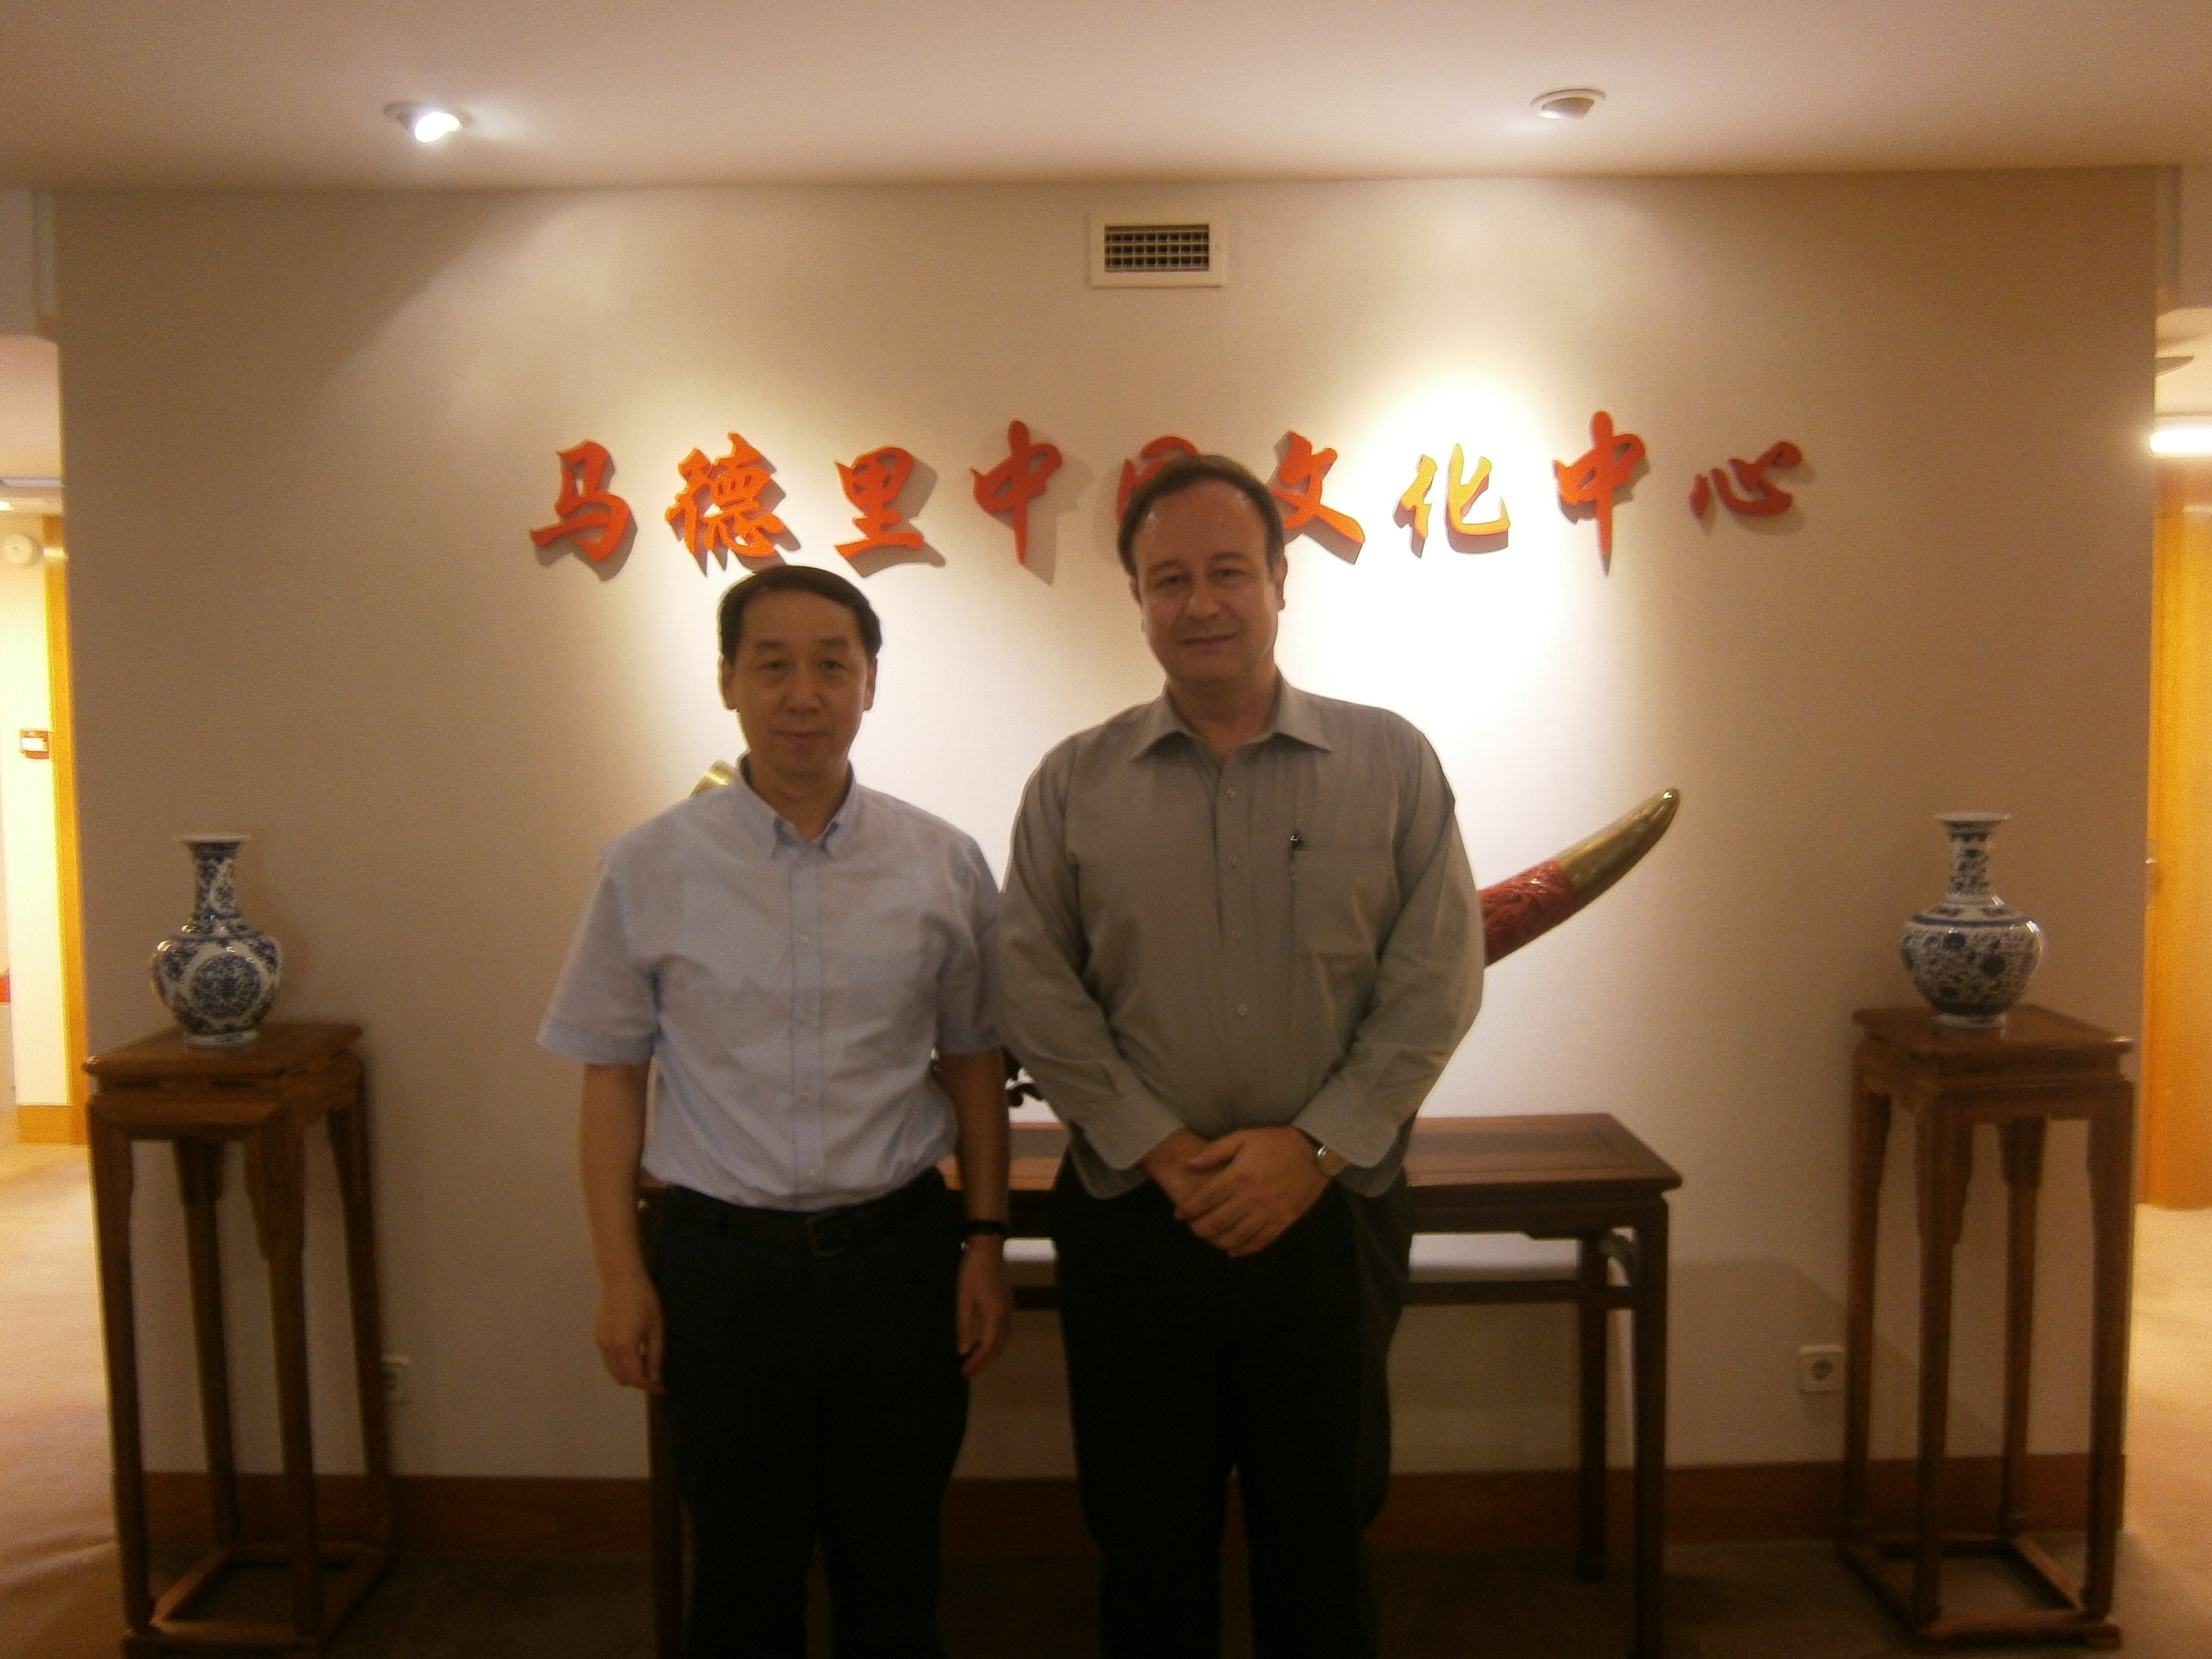 Augusto Soto with Cui Shaopeng, Secretary-General of the Central Commission for Discipline Inspection of the Communist Party of China